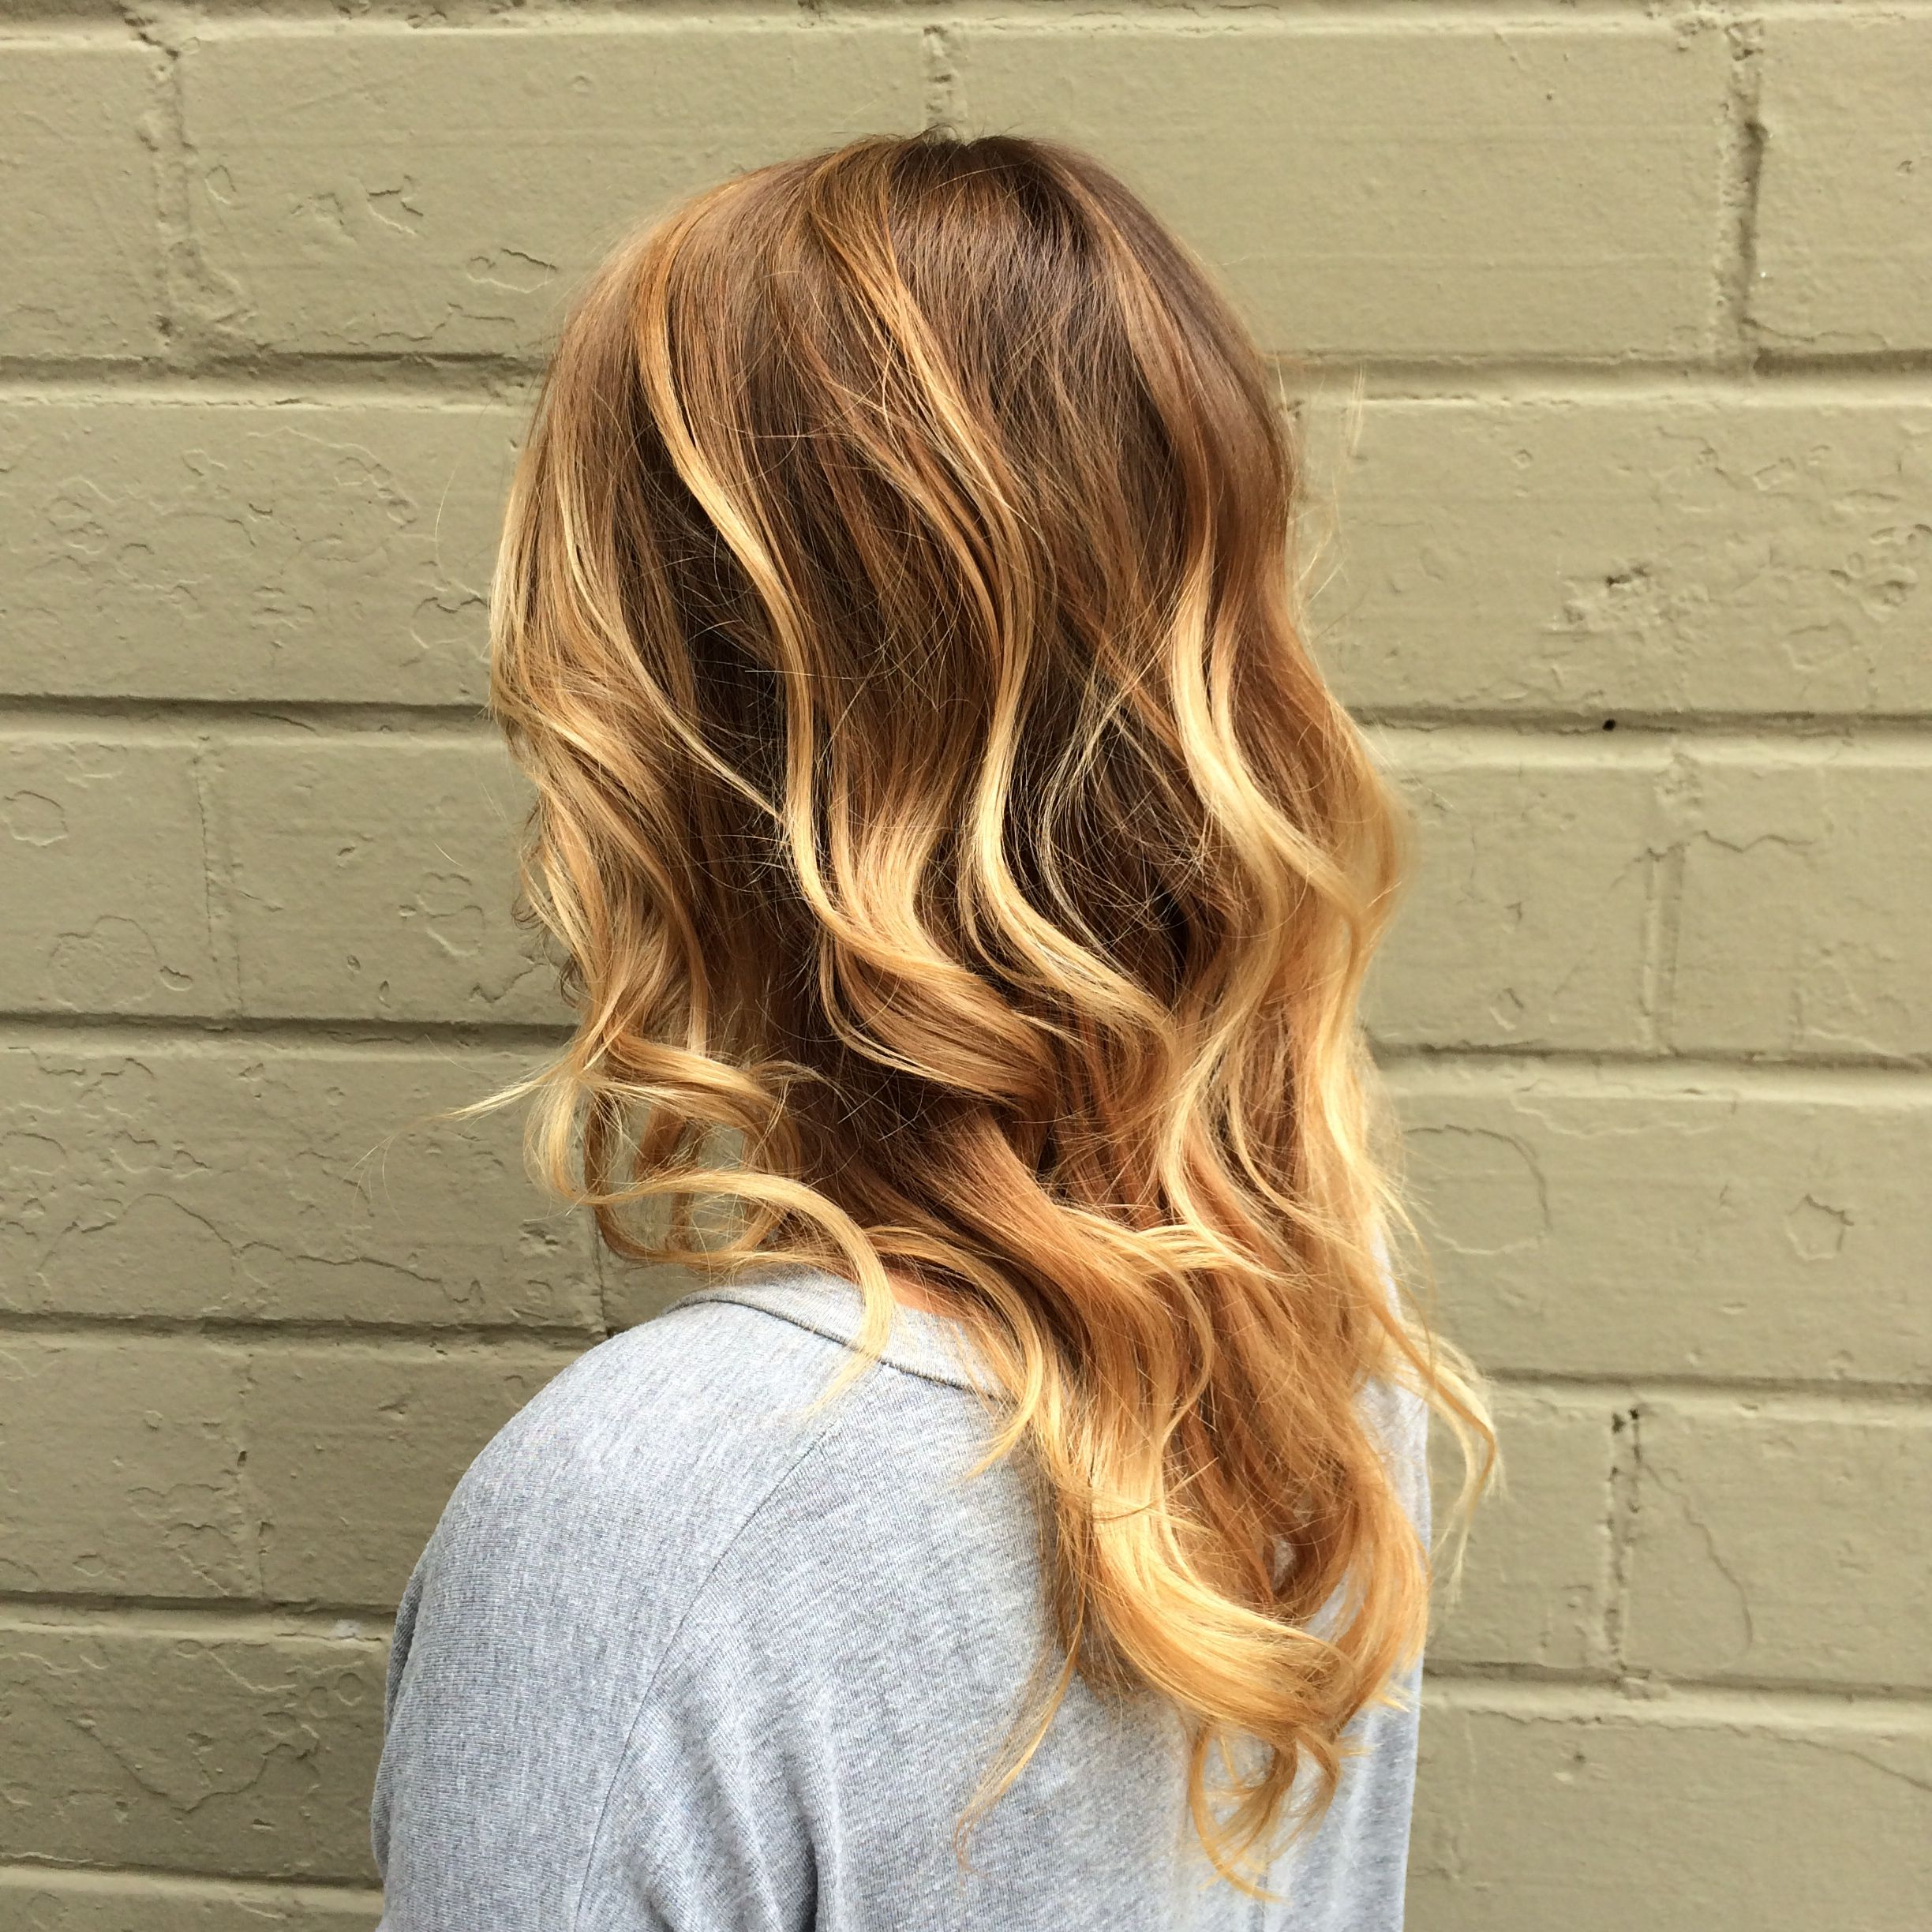 Sombré by suzannah at crown beauty bar davinescolor